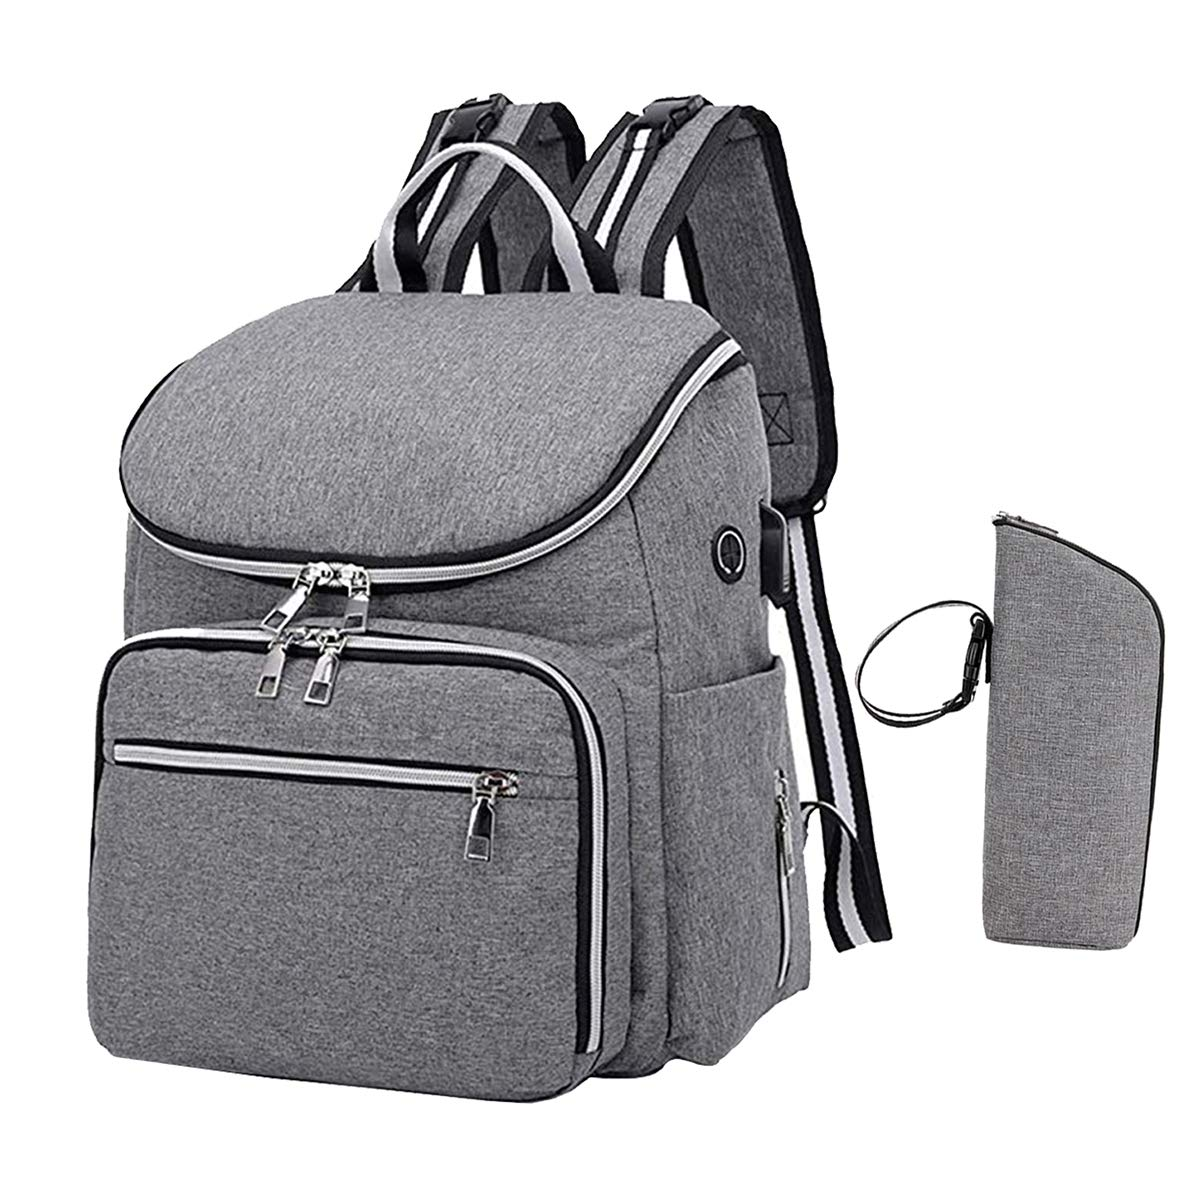 LUCKIPLUS Diaper Bag Backpack With USB Charging Port Multi-Function Nappy Ba